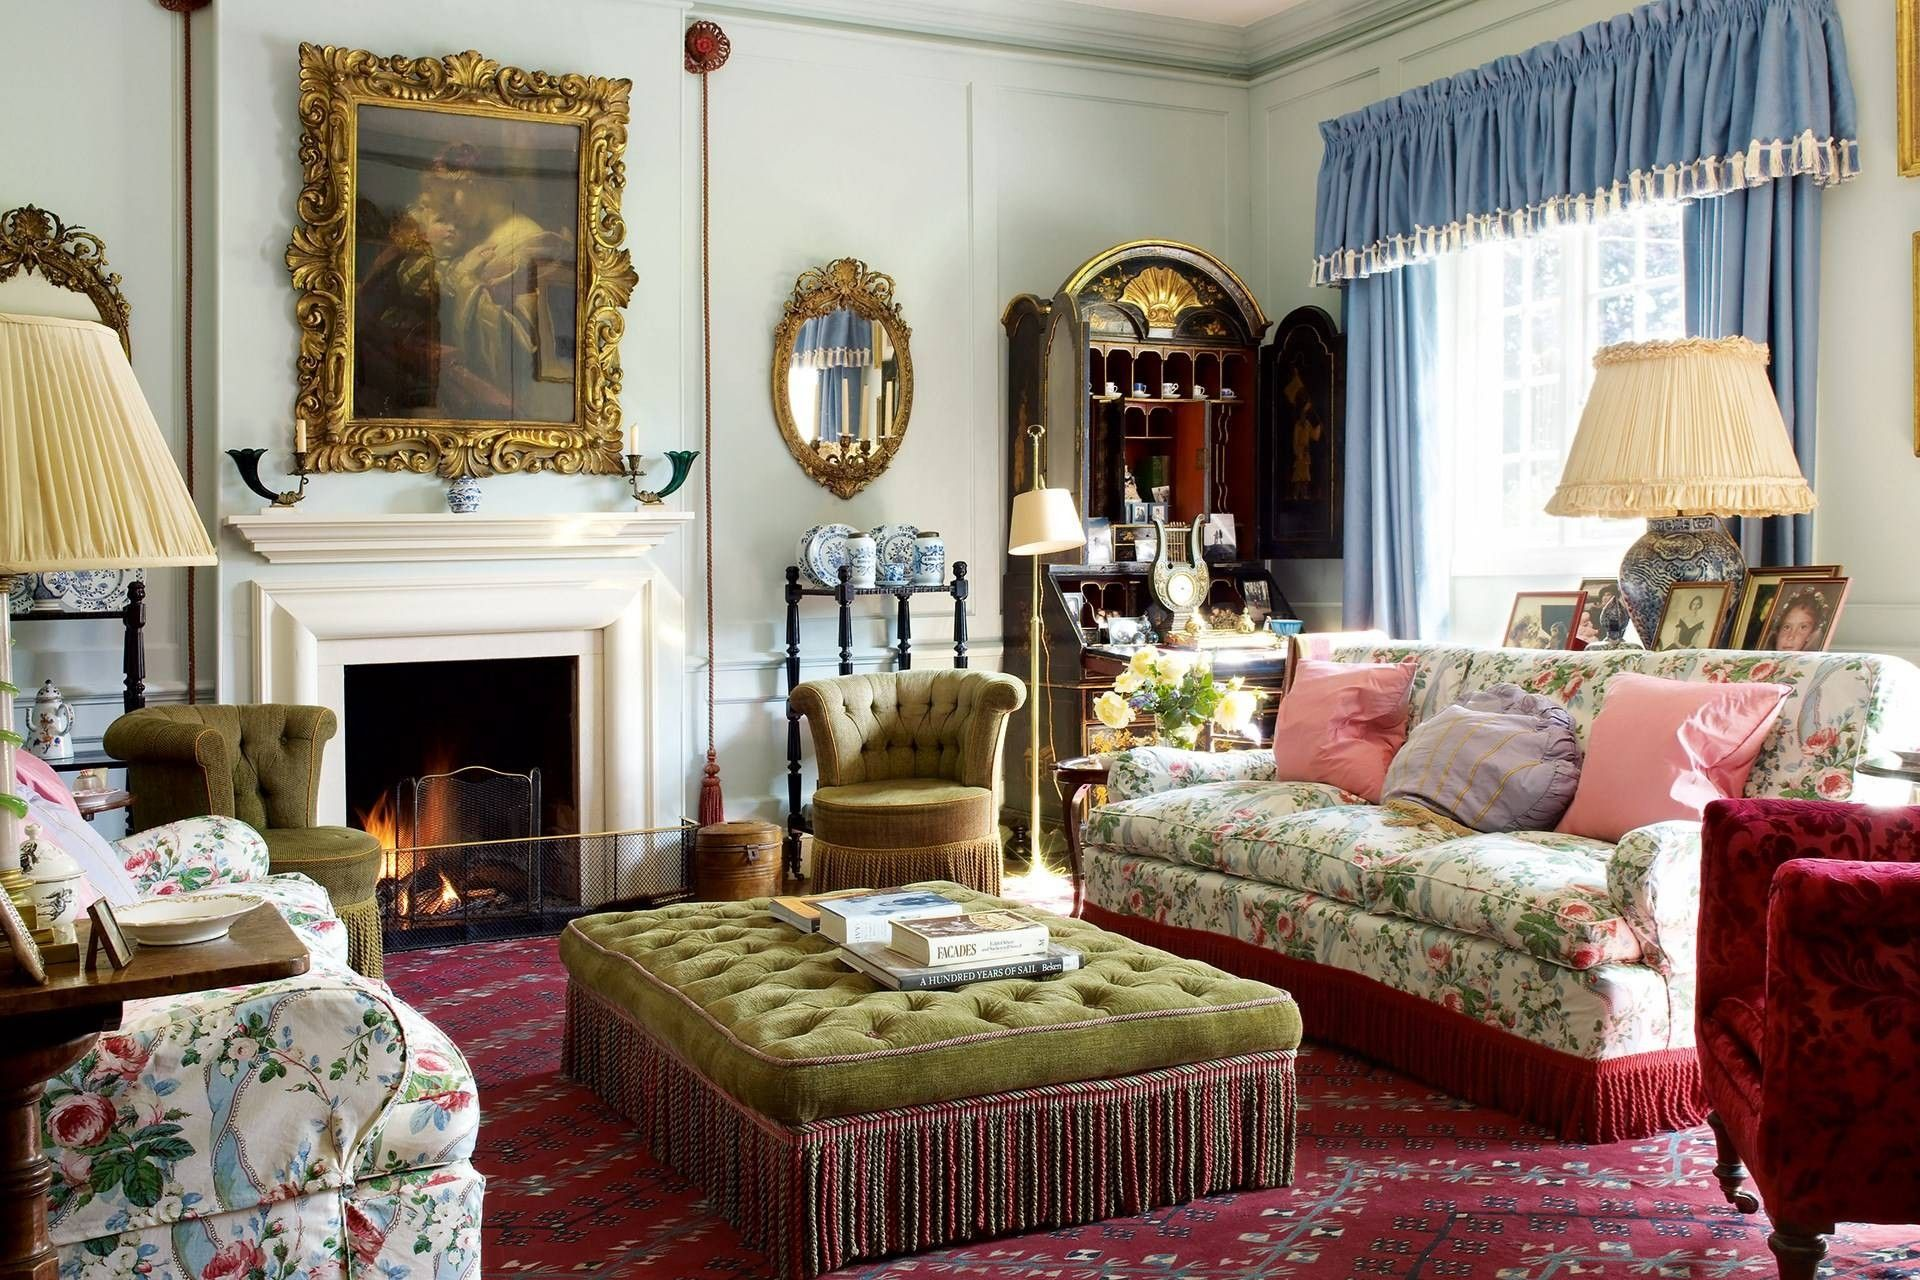 Pin by Lee Walkington on English style | Country style ...